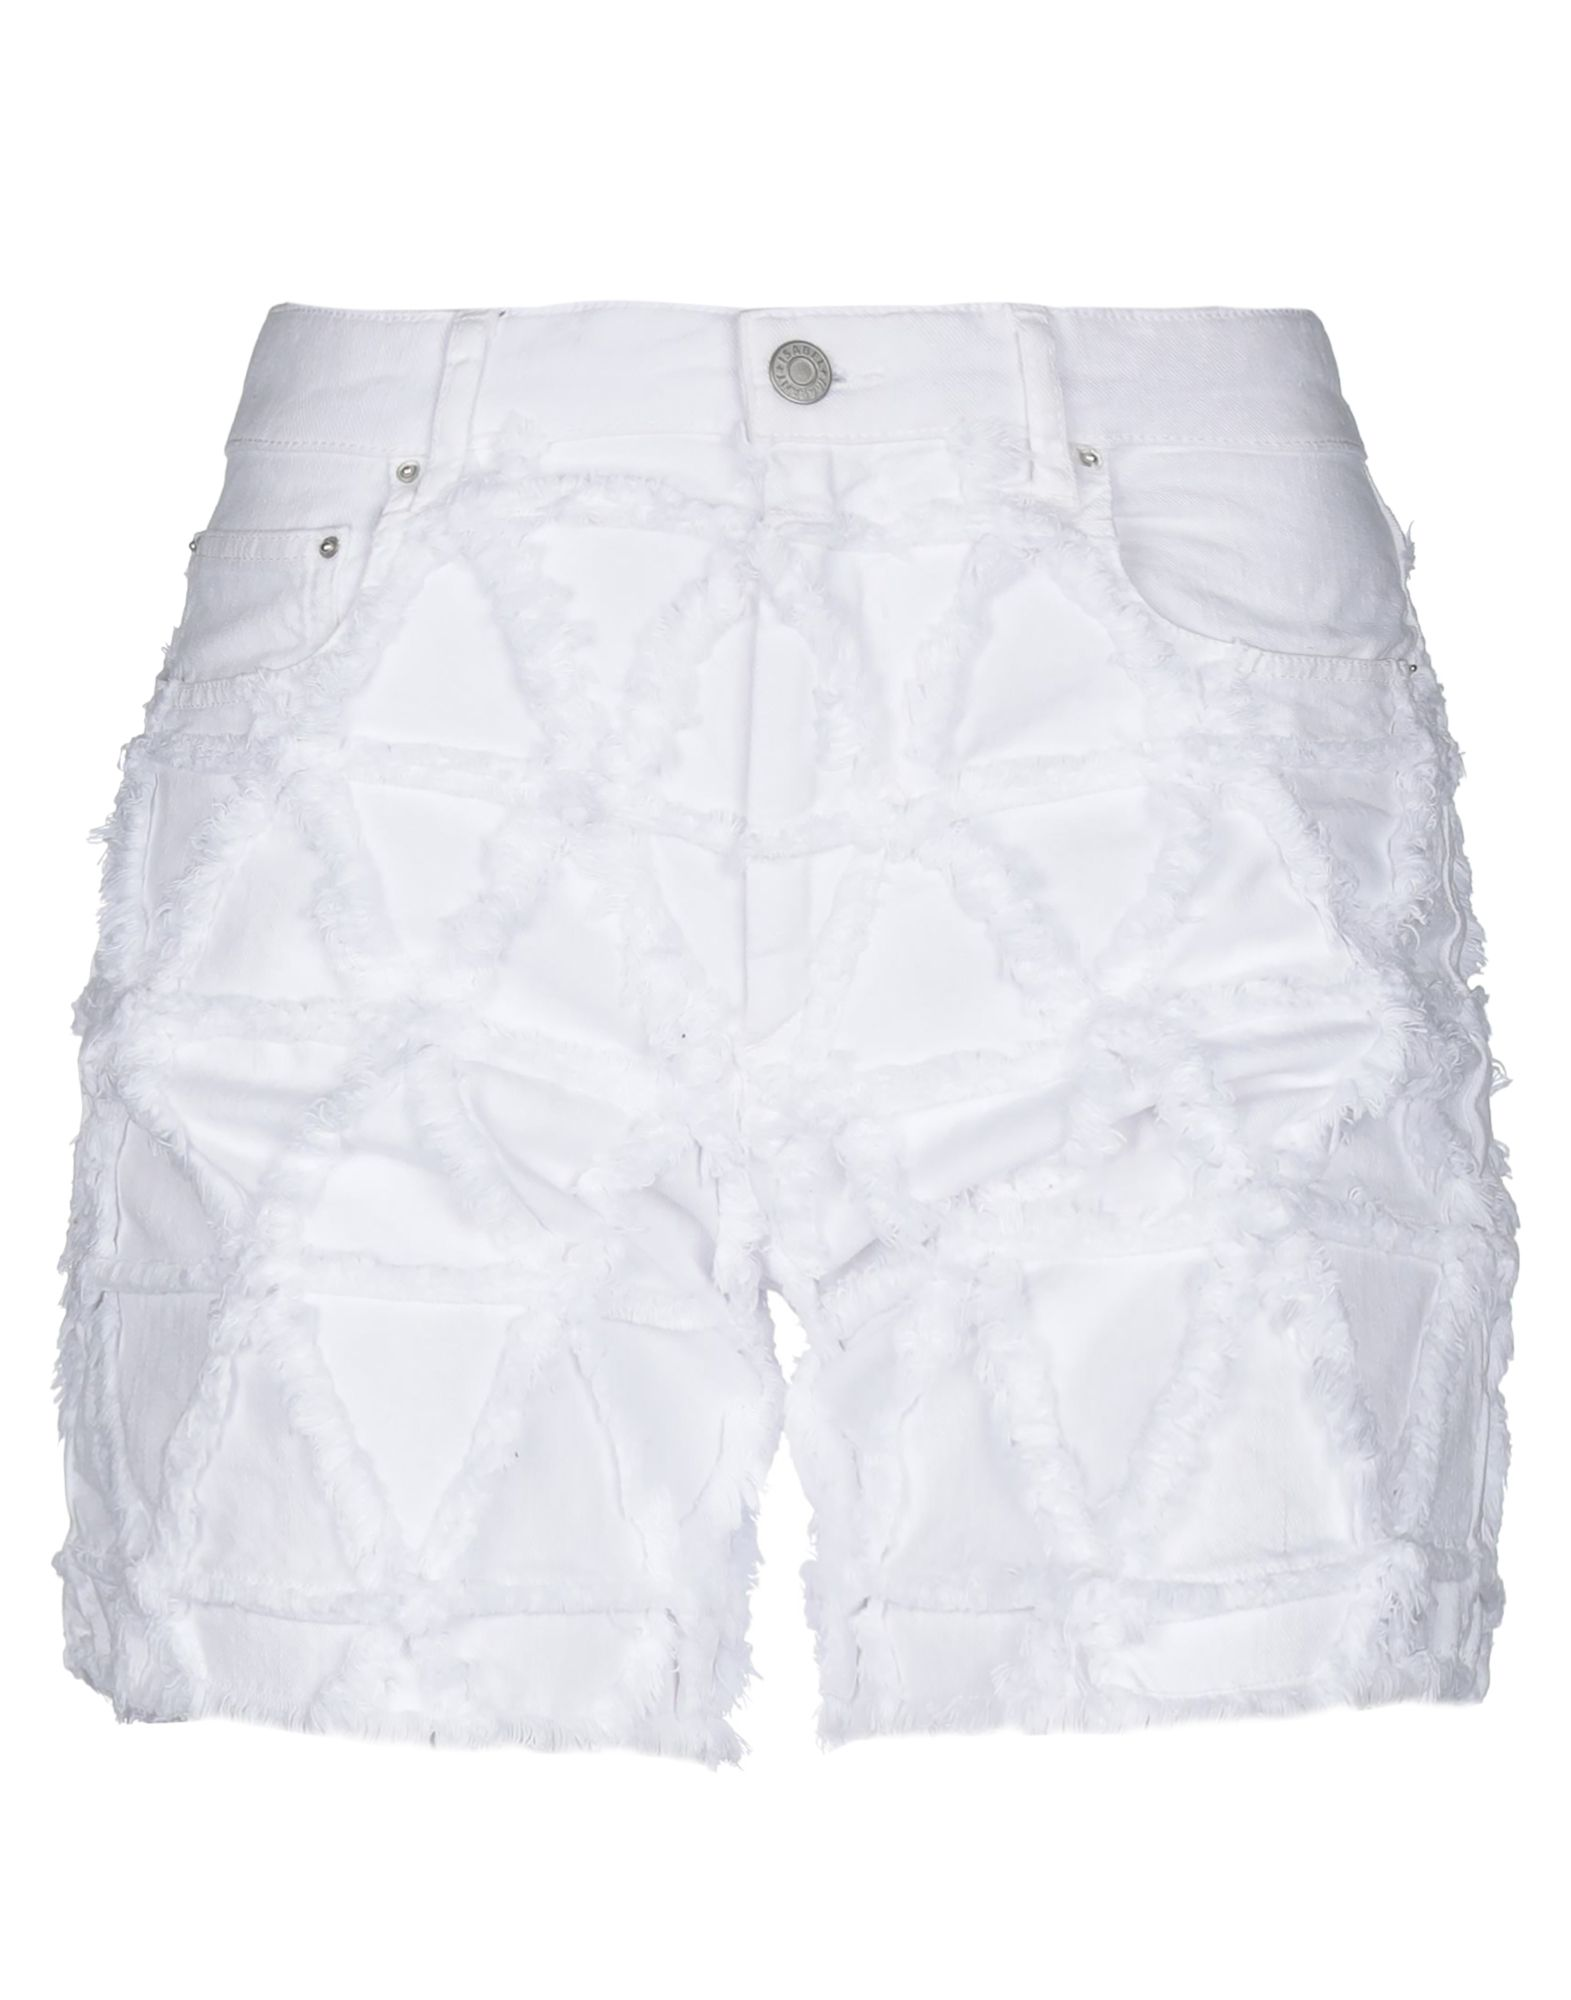 ISABEL MARANT Denim shorts. denim, basic solid colour, high waisted, colored wash, front closure, button, zip, multipockets, fringe, stretch. 97% Cotton, 3% Elastane